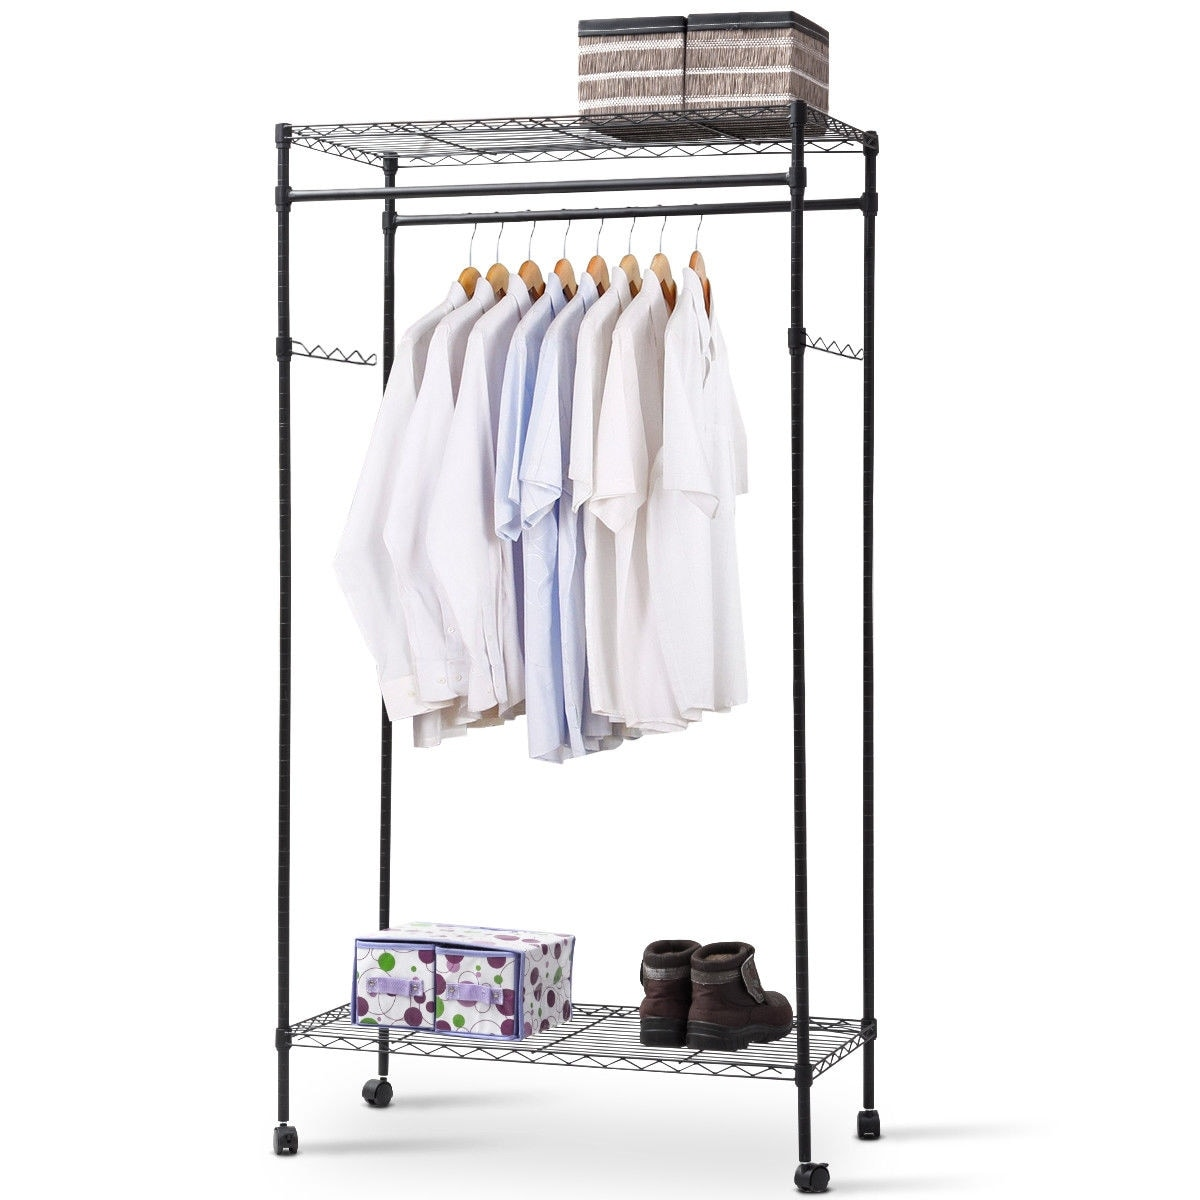 Shop Costway Garment Rack Double Hanging Clothes Rail Rolling Adjustable  Rod Portable Shelf   Free Shipping Today   Overstock.com   20476043